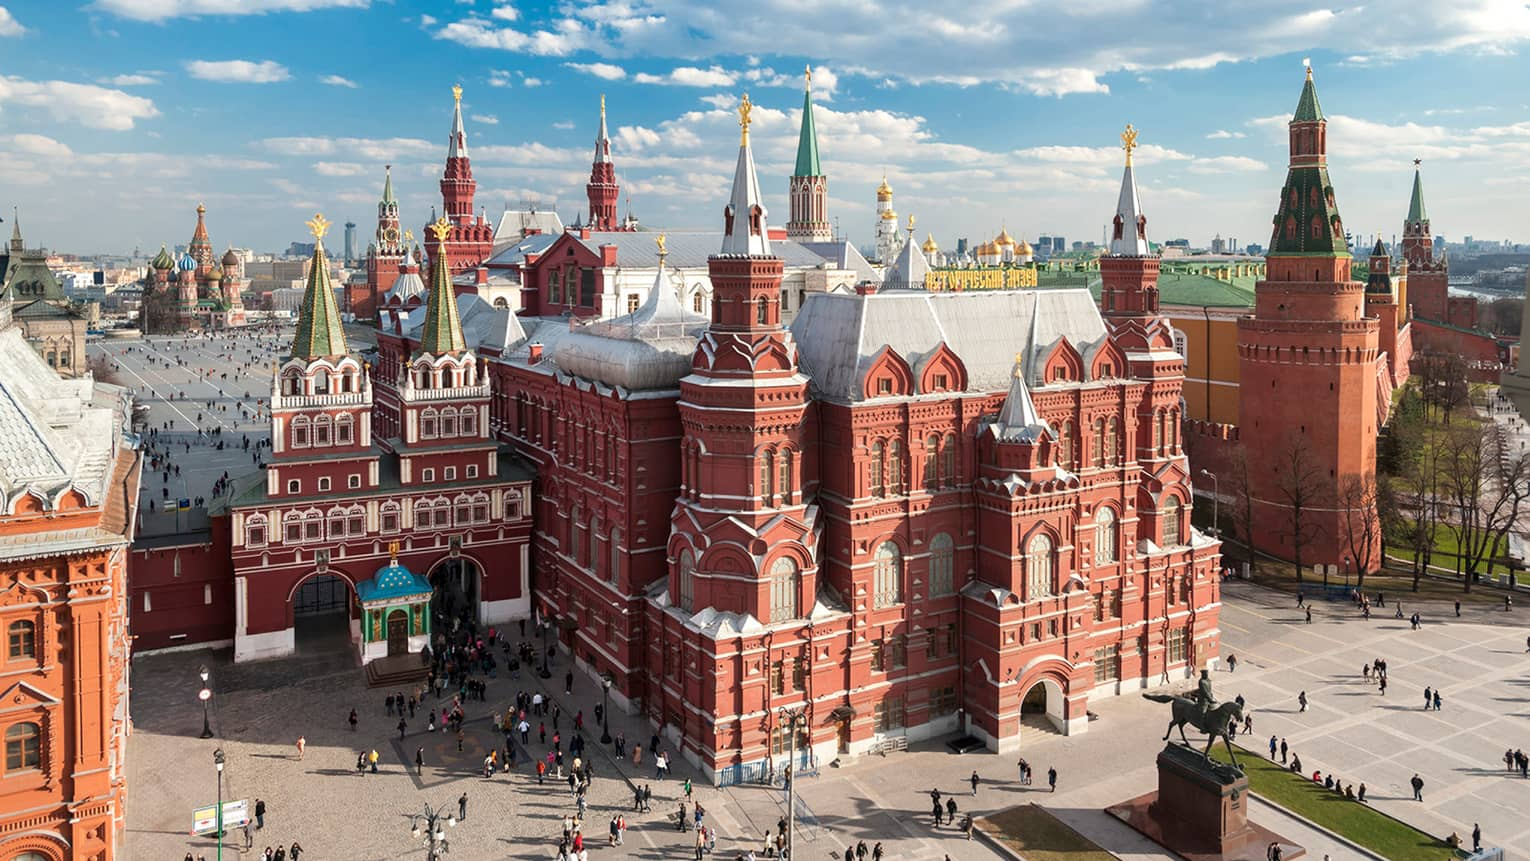 People walking in front of the State Historical Museum in Moscow's Red Square on sunny day